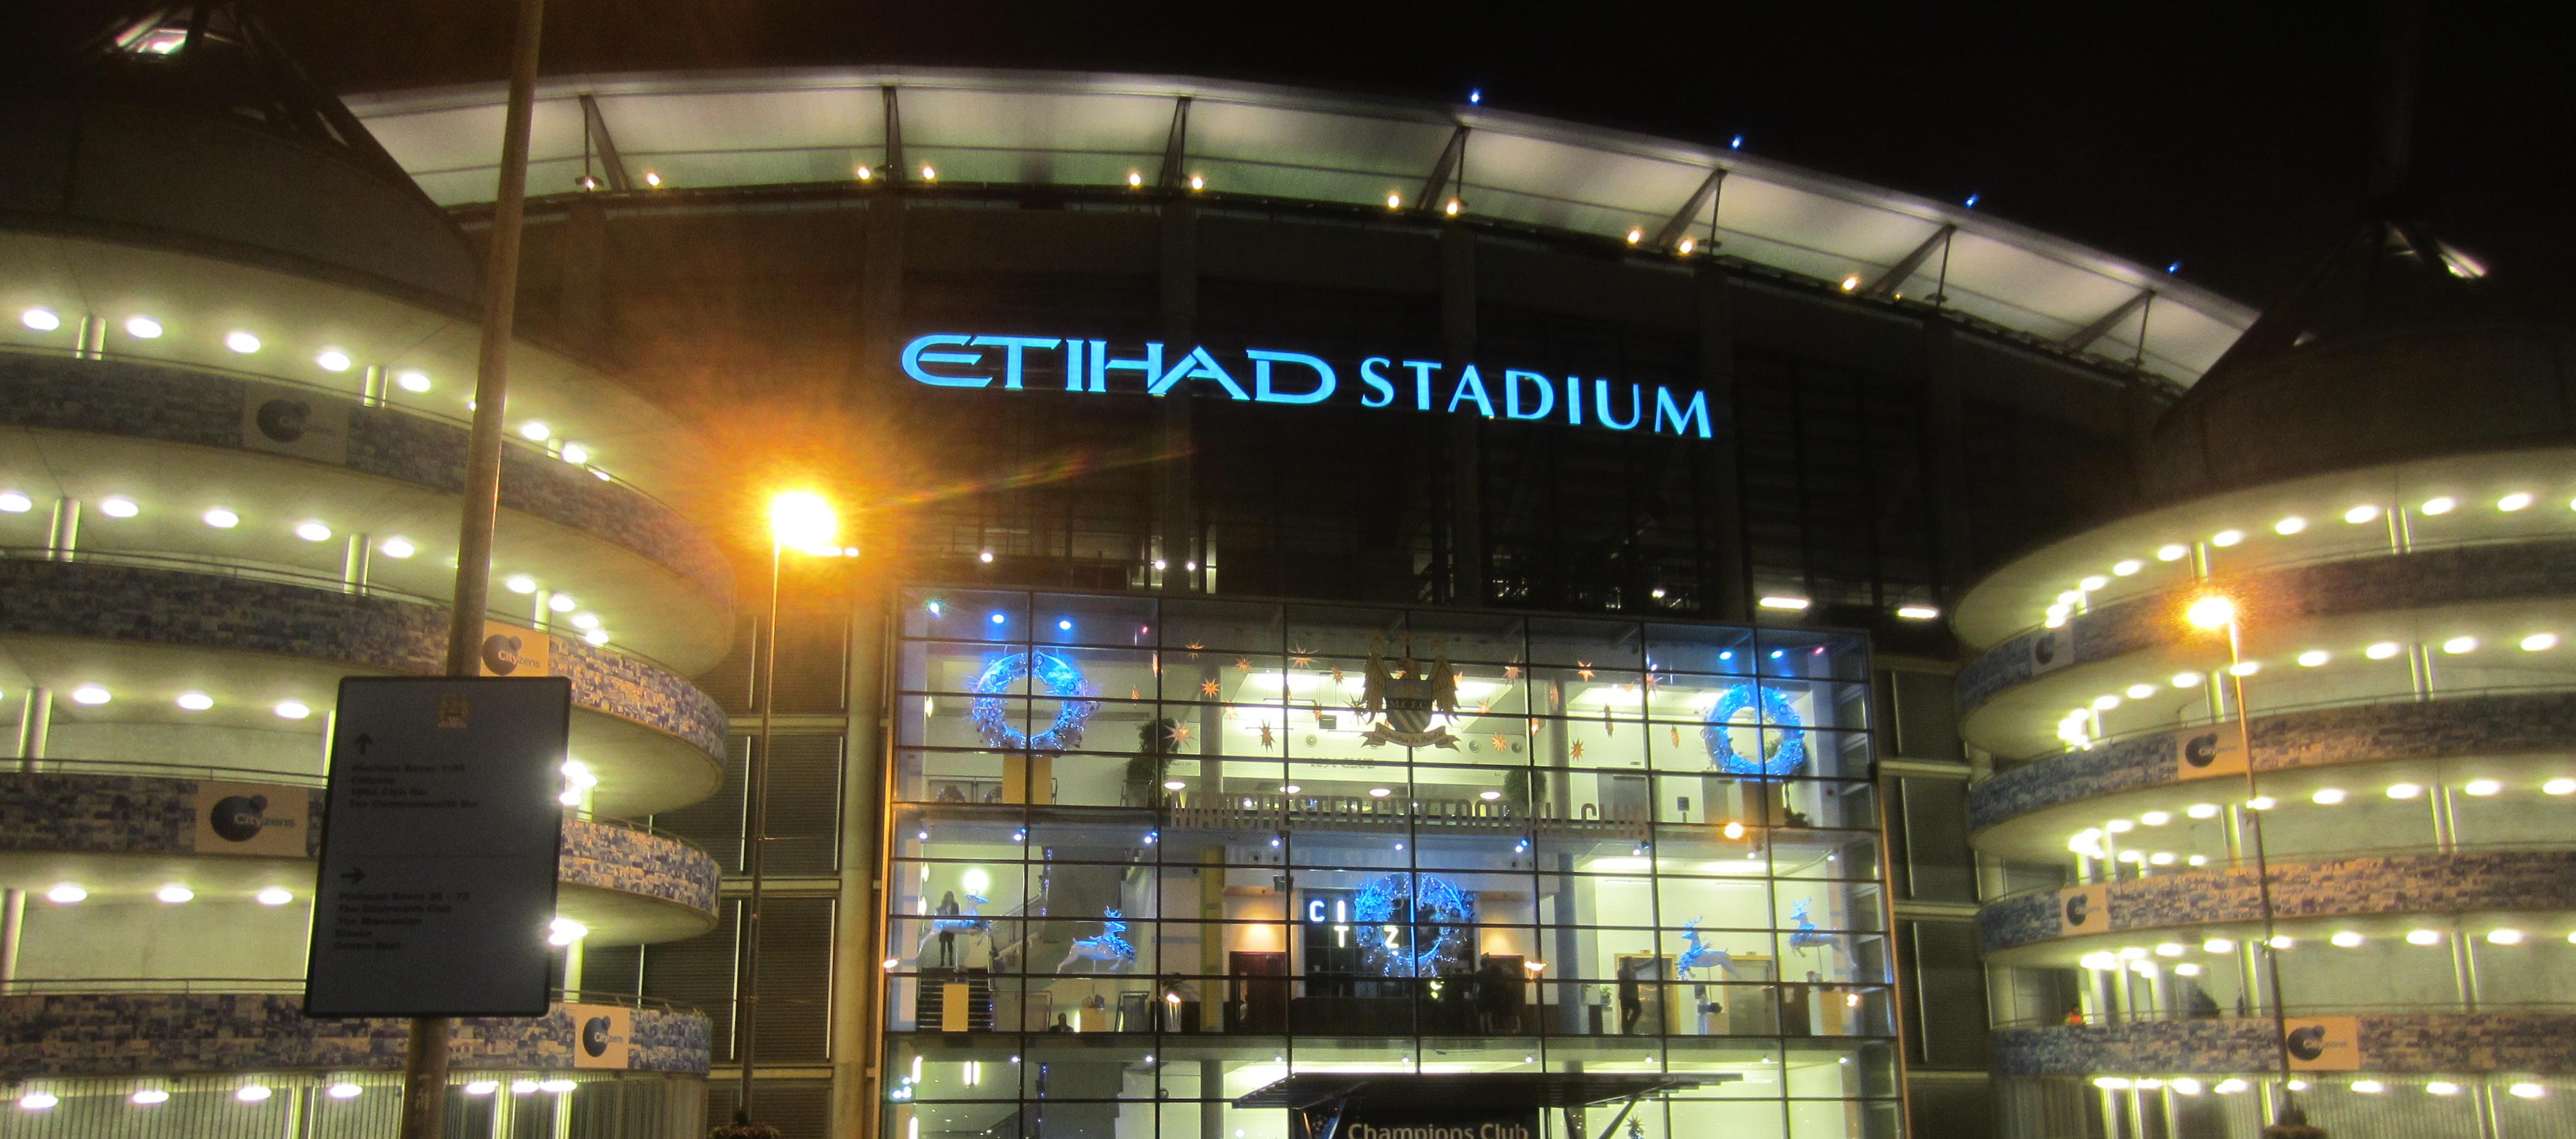 Etihad Stadium Manchester City